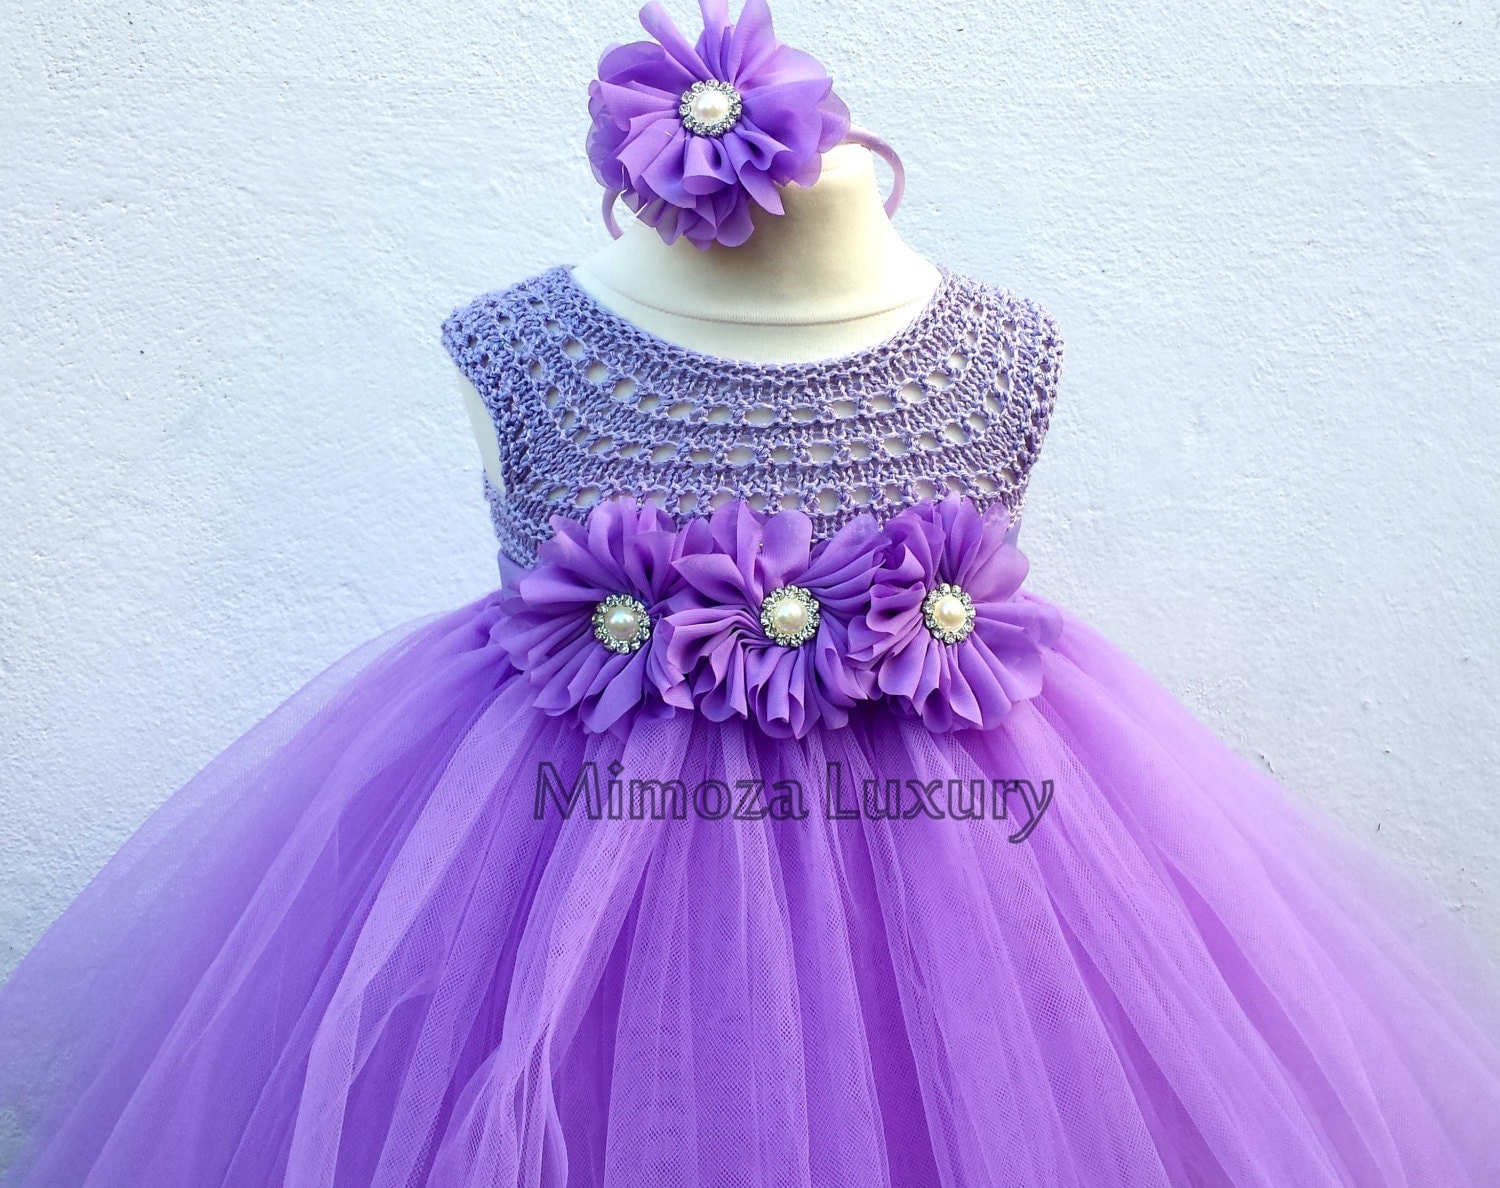 Where to buy sofia the first dress